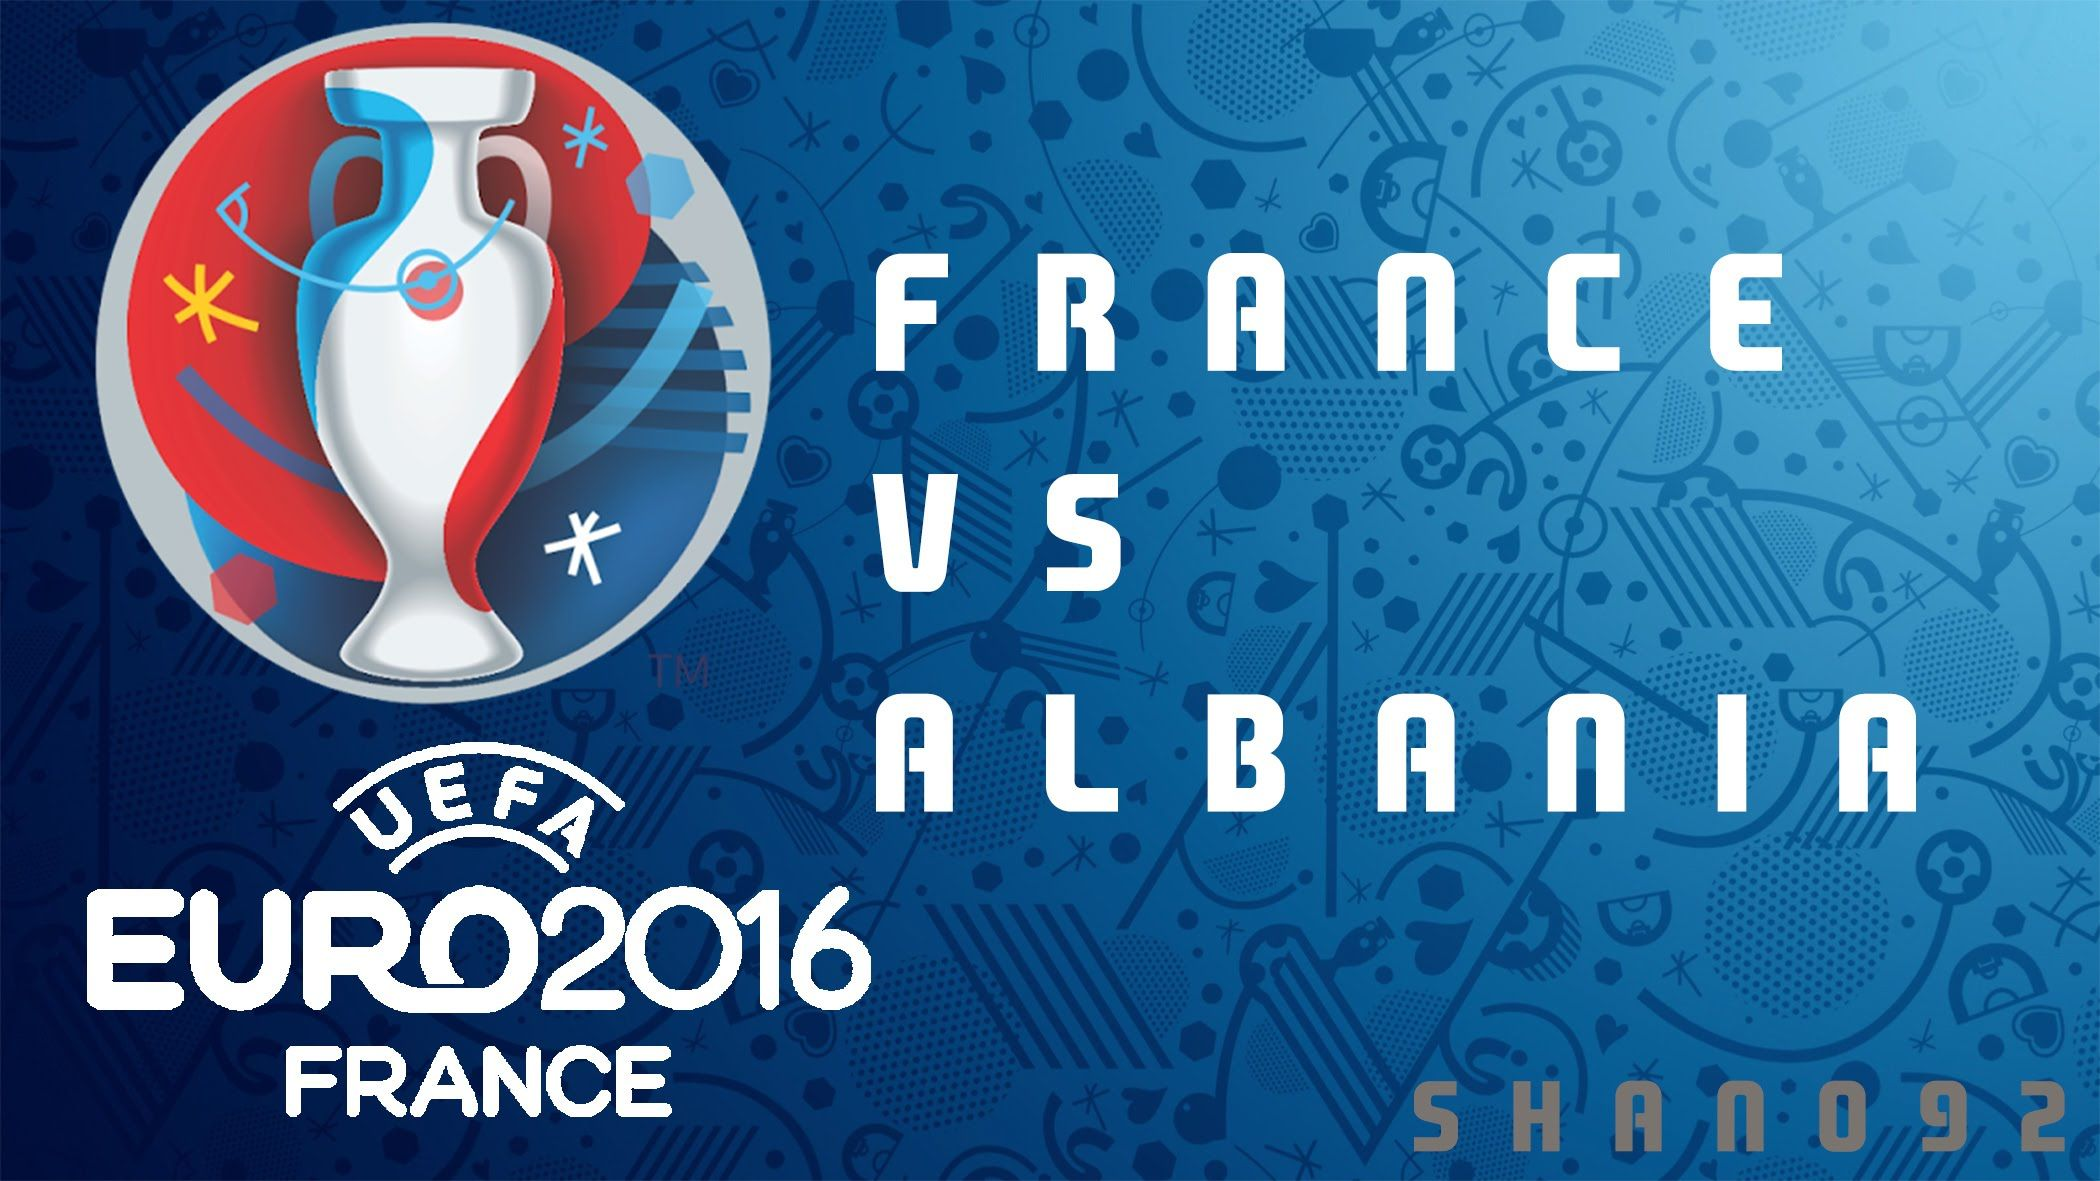 France Vs Albania UEFA EURO 2016 14th Match Live Match Preview, Prediction, Highlights, Online Streaming, Broadcaster, TV Channels - http://www.tsmplug.com/football/france-vs-albania-uefa-euro-2016-14th-match-live-match-preview-prediction-highlights-online-streaming-broadcaster-tv-channels/